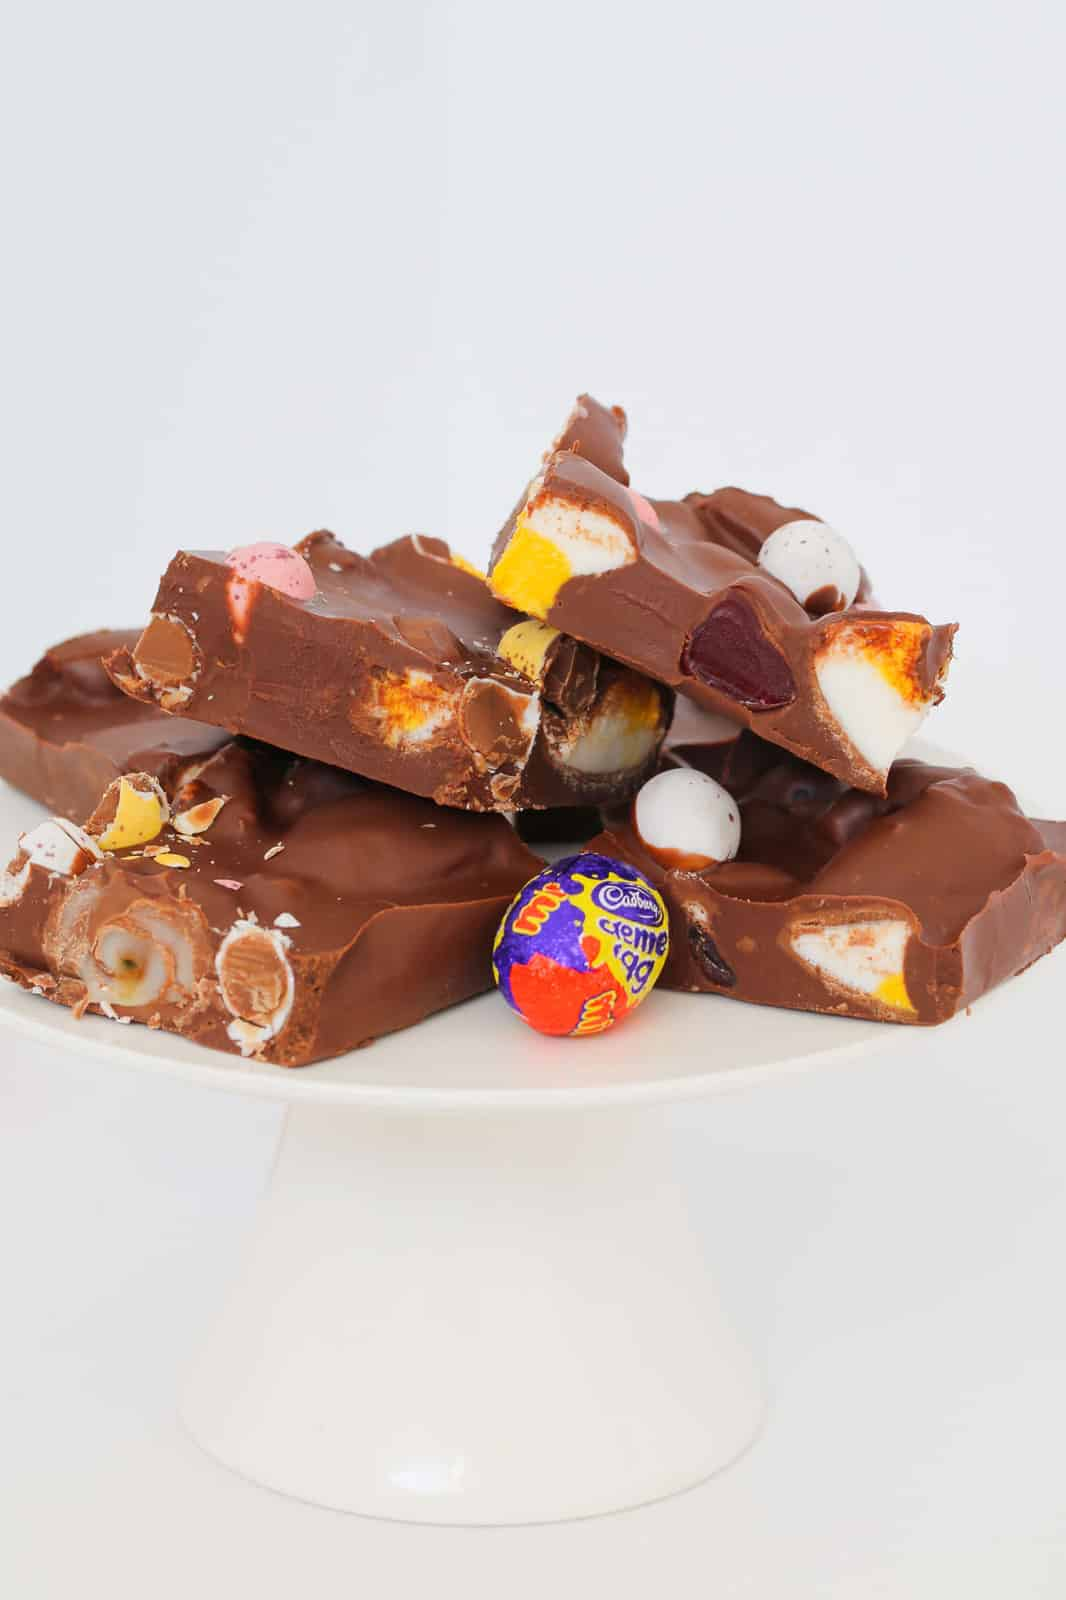 Pieces of Easter rocky road on a white plate.